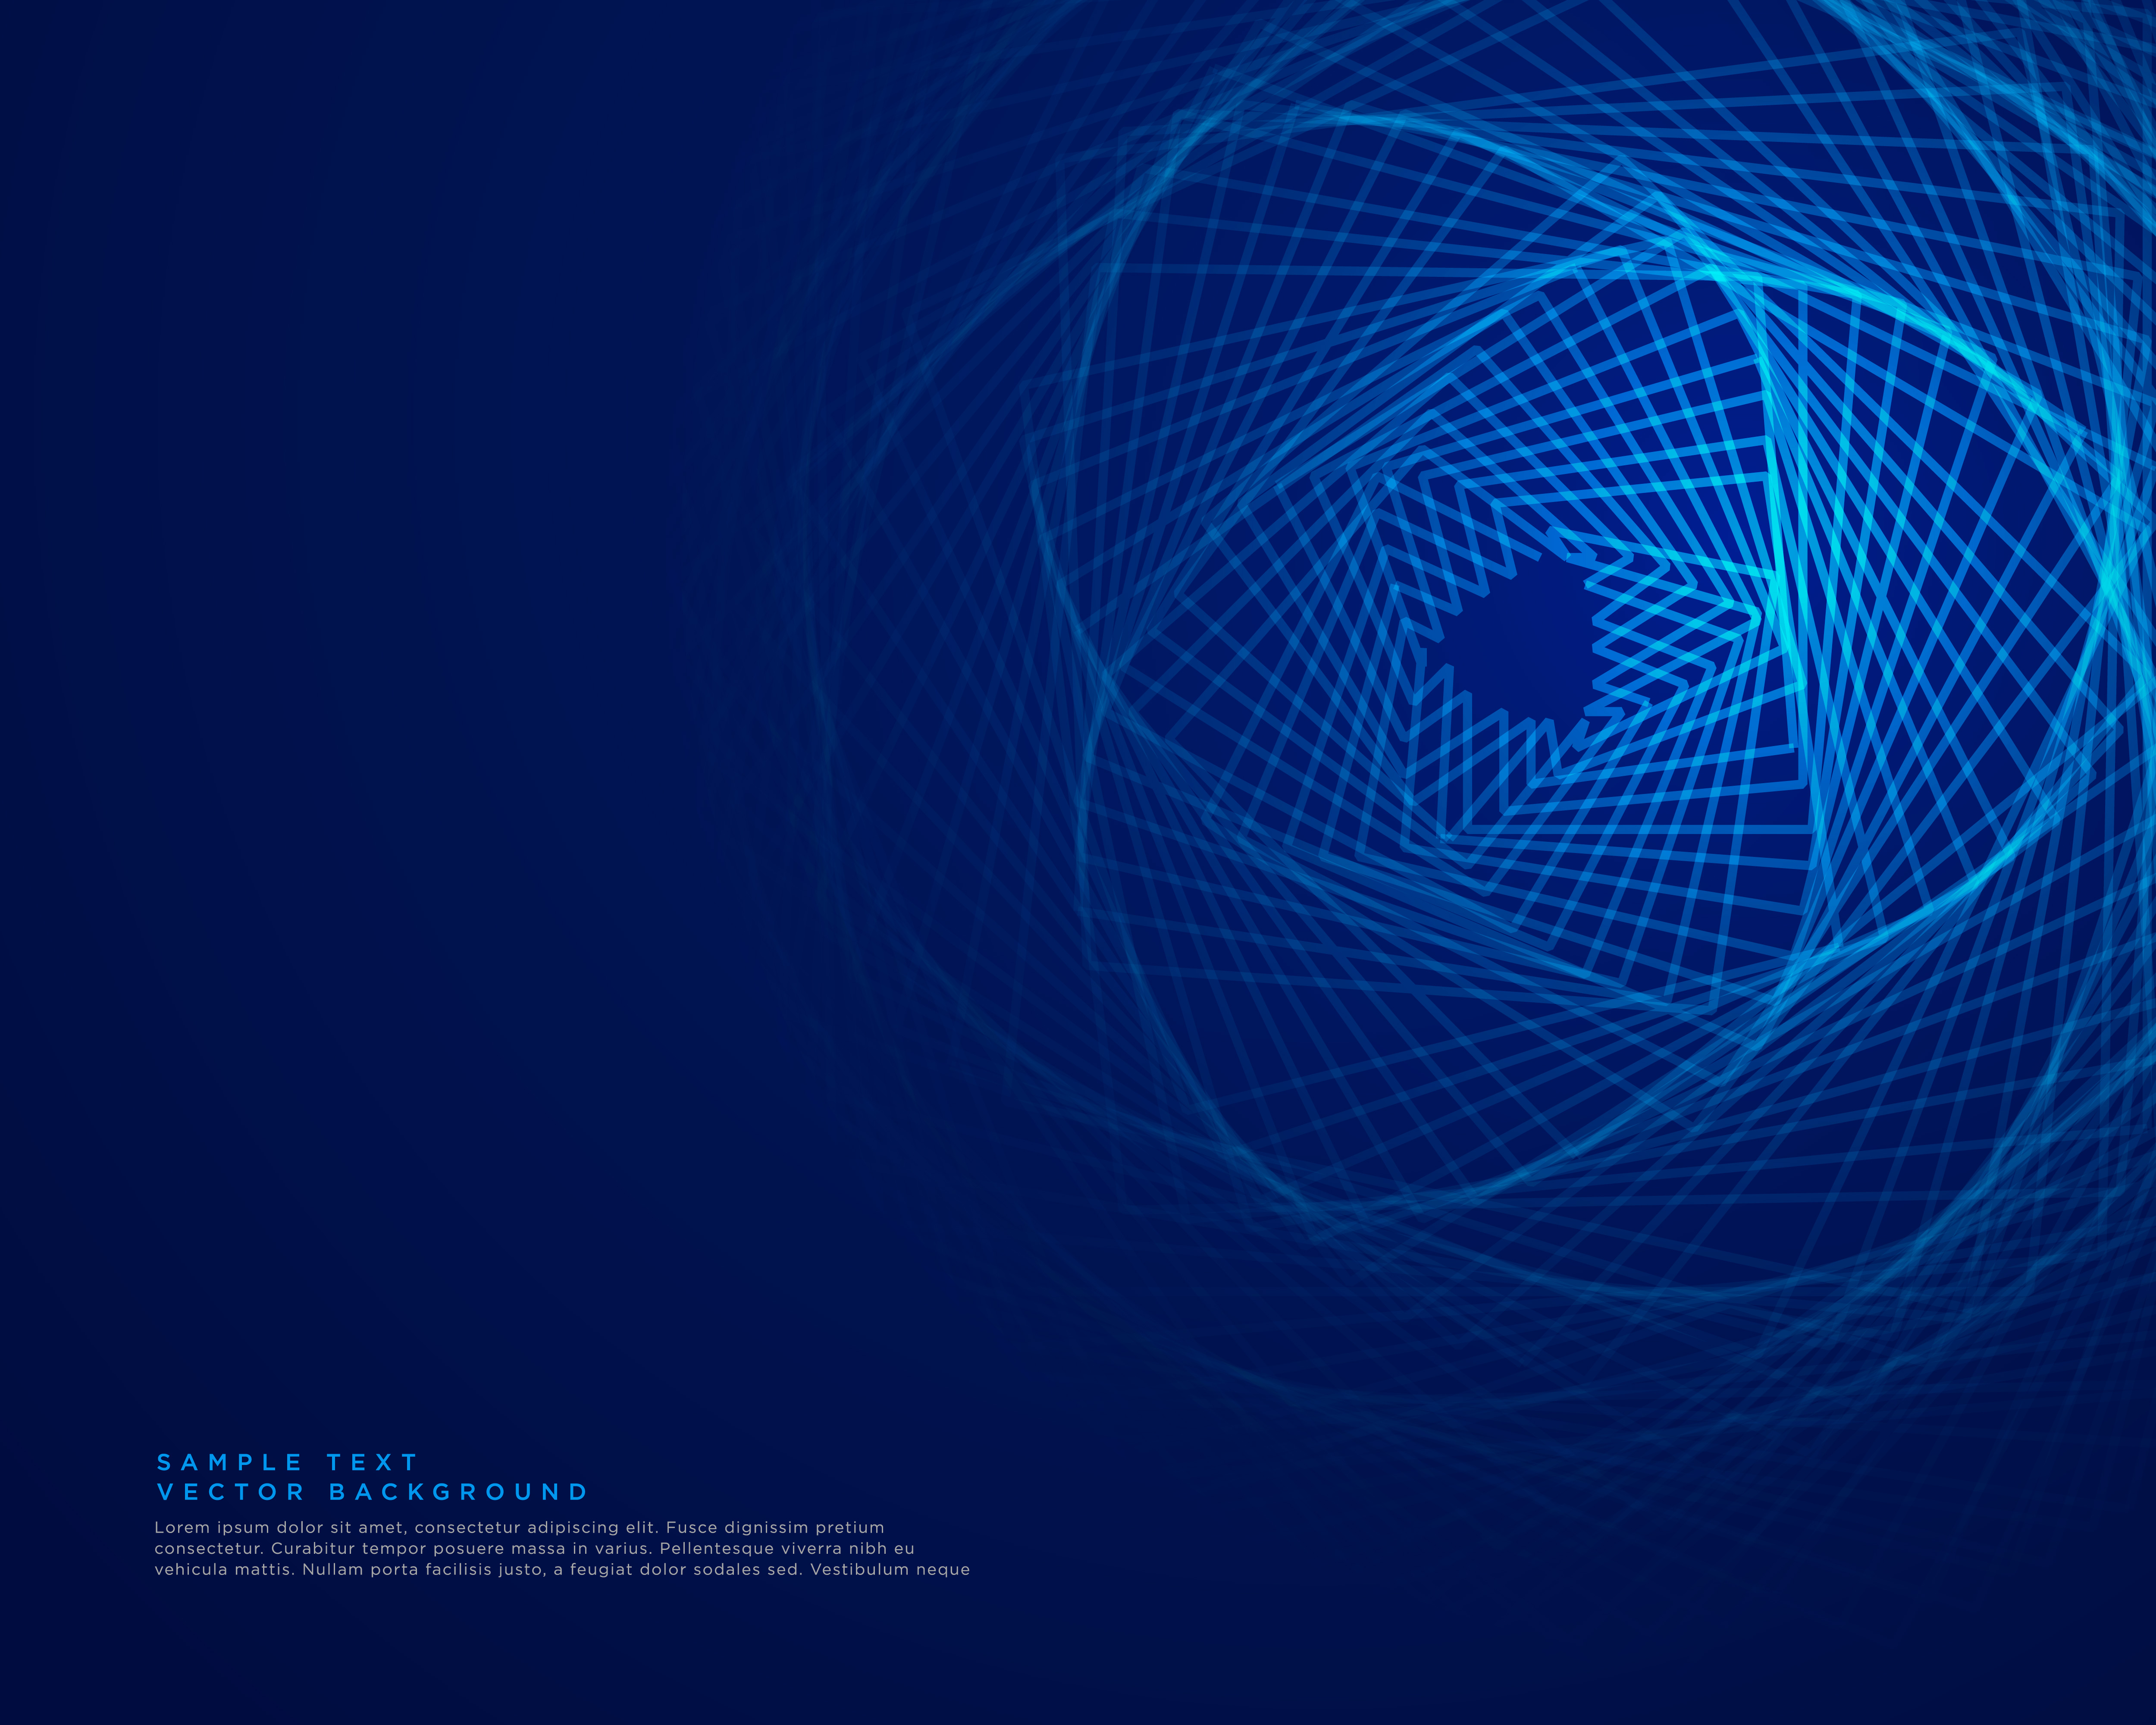 Blue Technology Abstract Background: Blue Technology Background With Abstract Lines